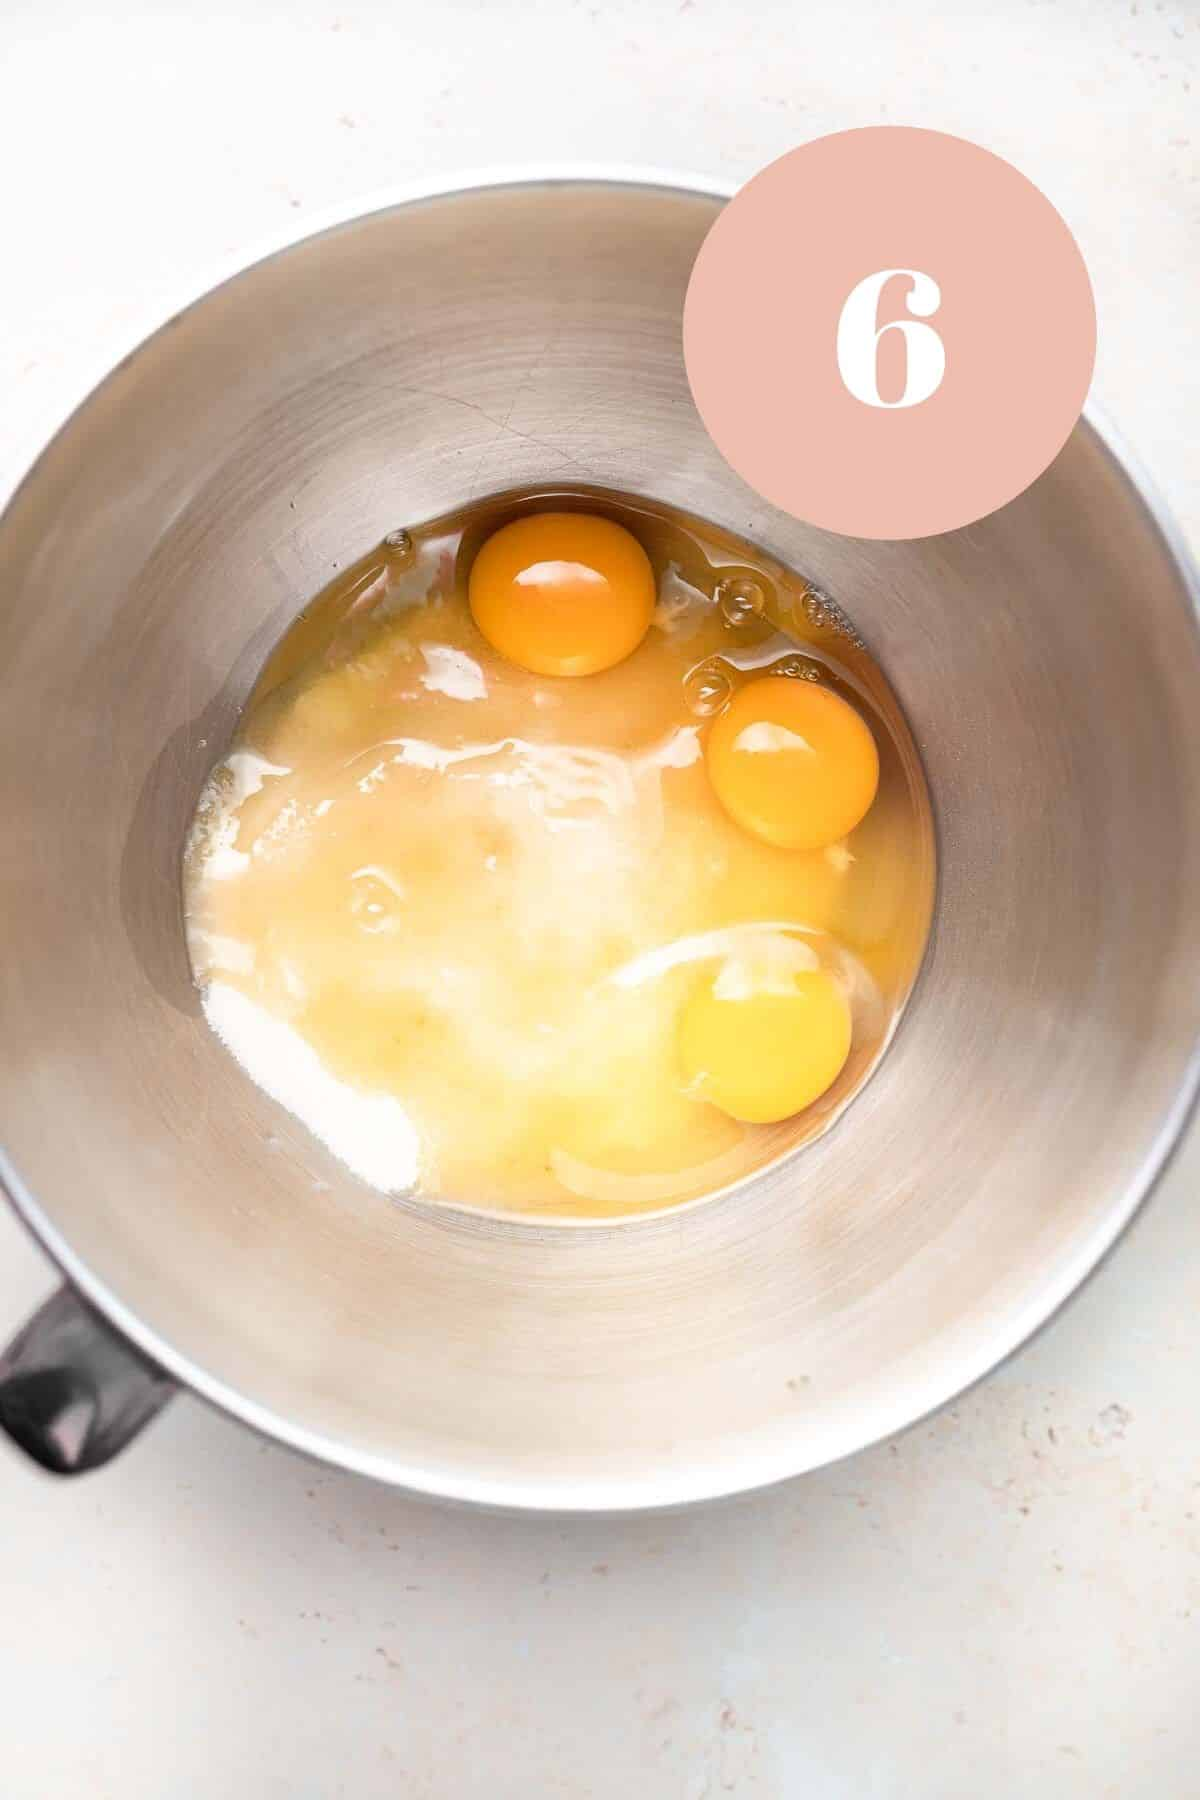 the eggs and sugar in a bowl for the ultimate brownie recipe.